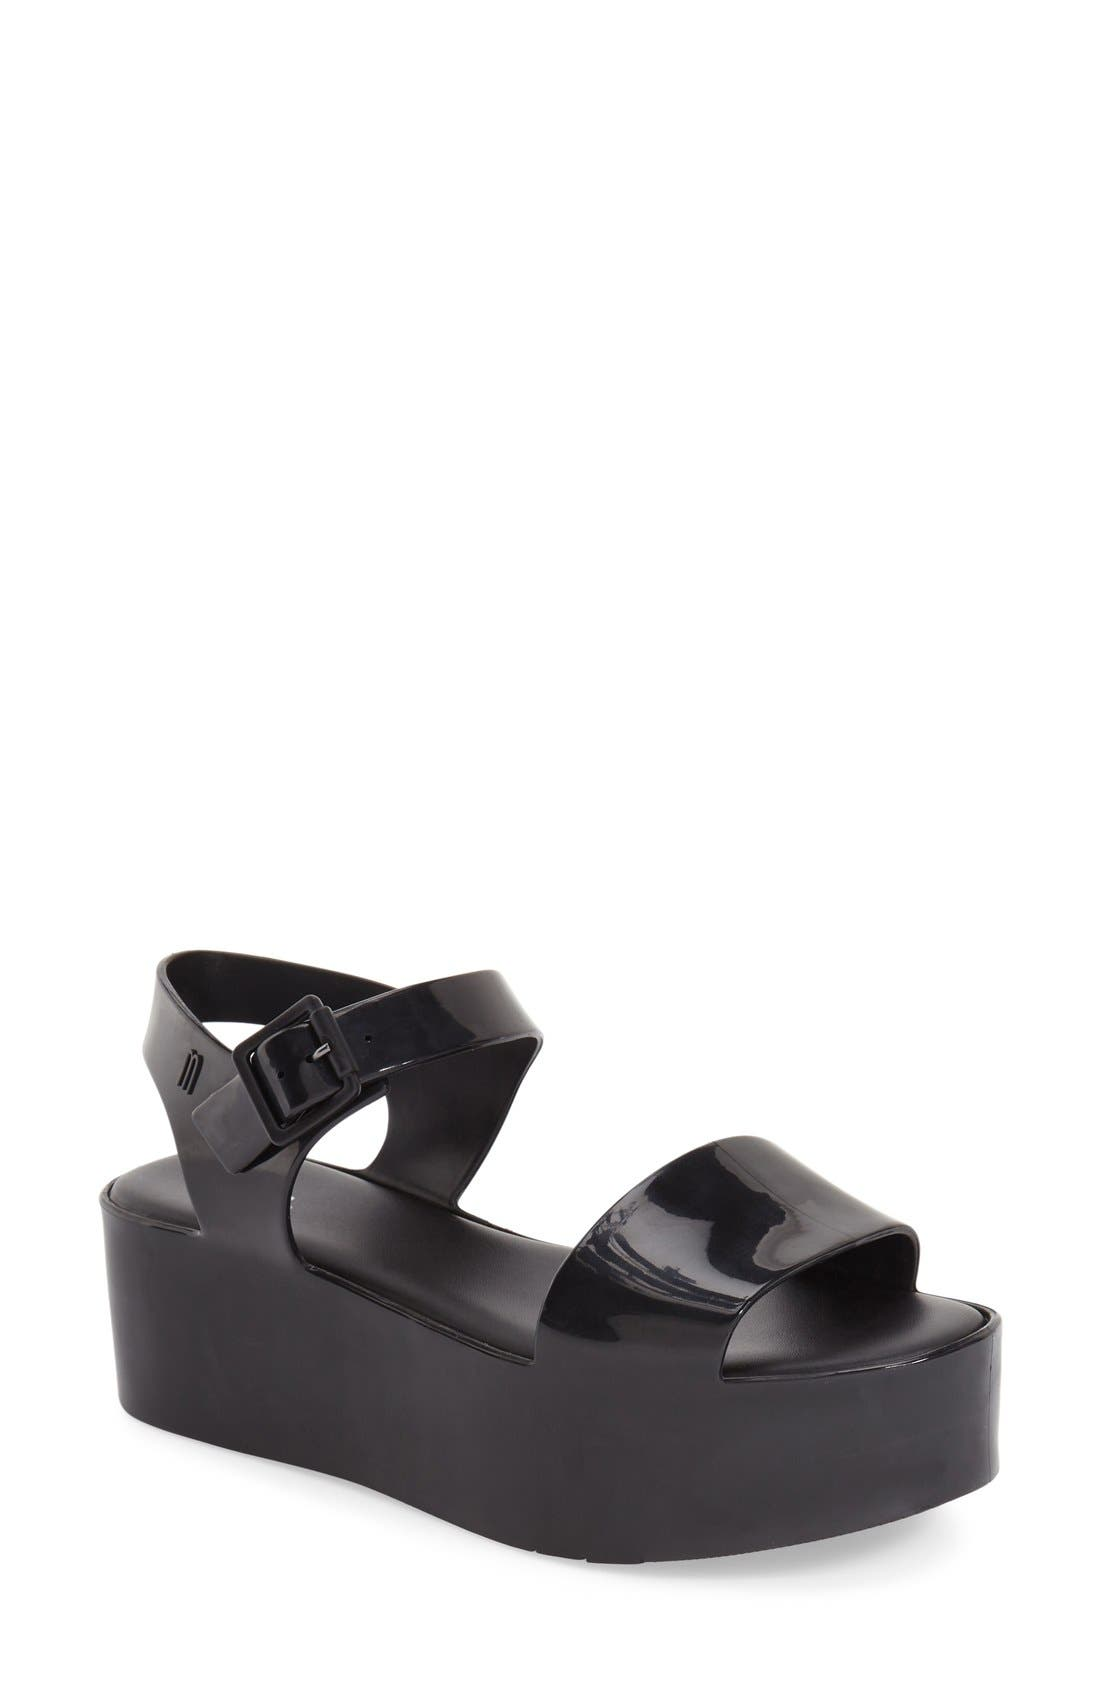 MELISSA, 'Mar' Platform Sandal, Main thumbnail 1, color, 001